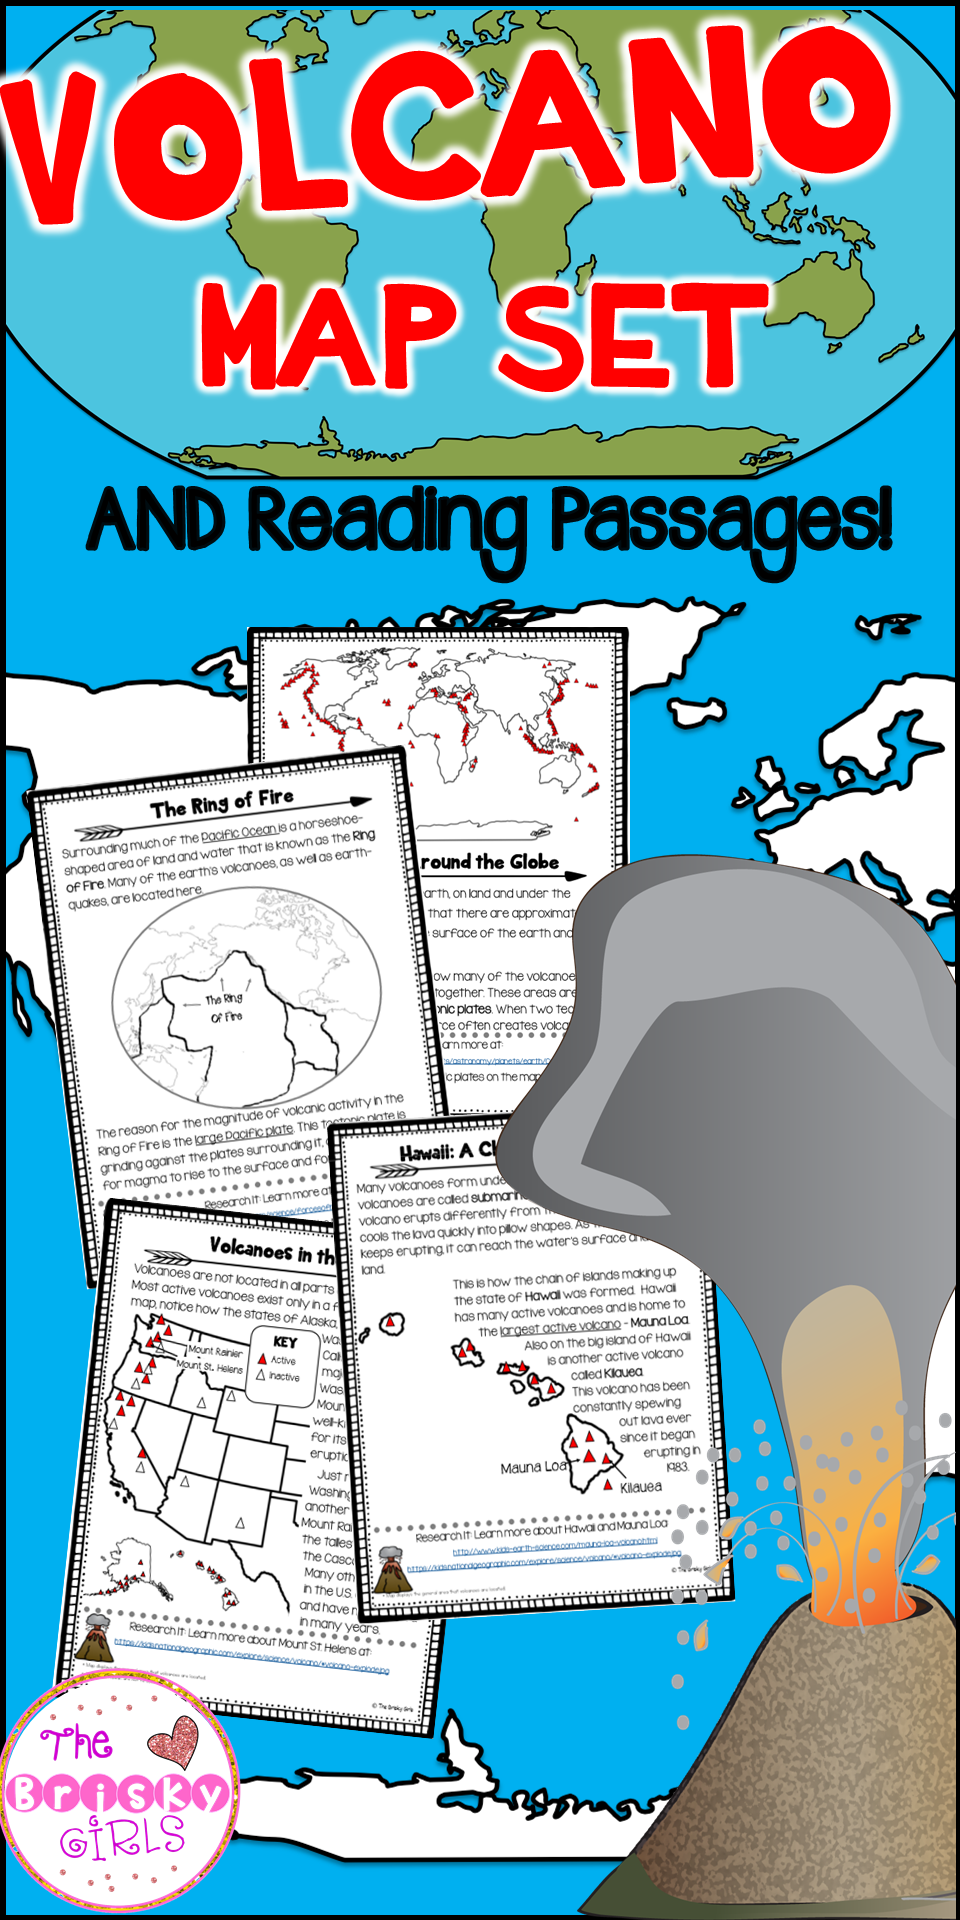 worksheet Volcanoes Reading Comprehension Worksheet volcano map set and reading passages classroom resources passages